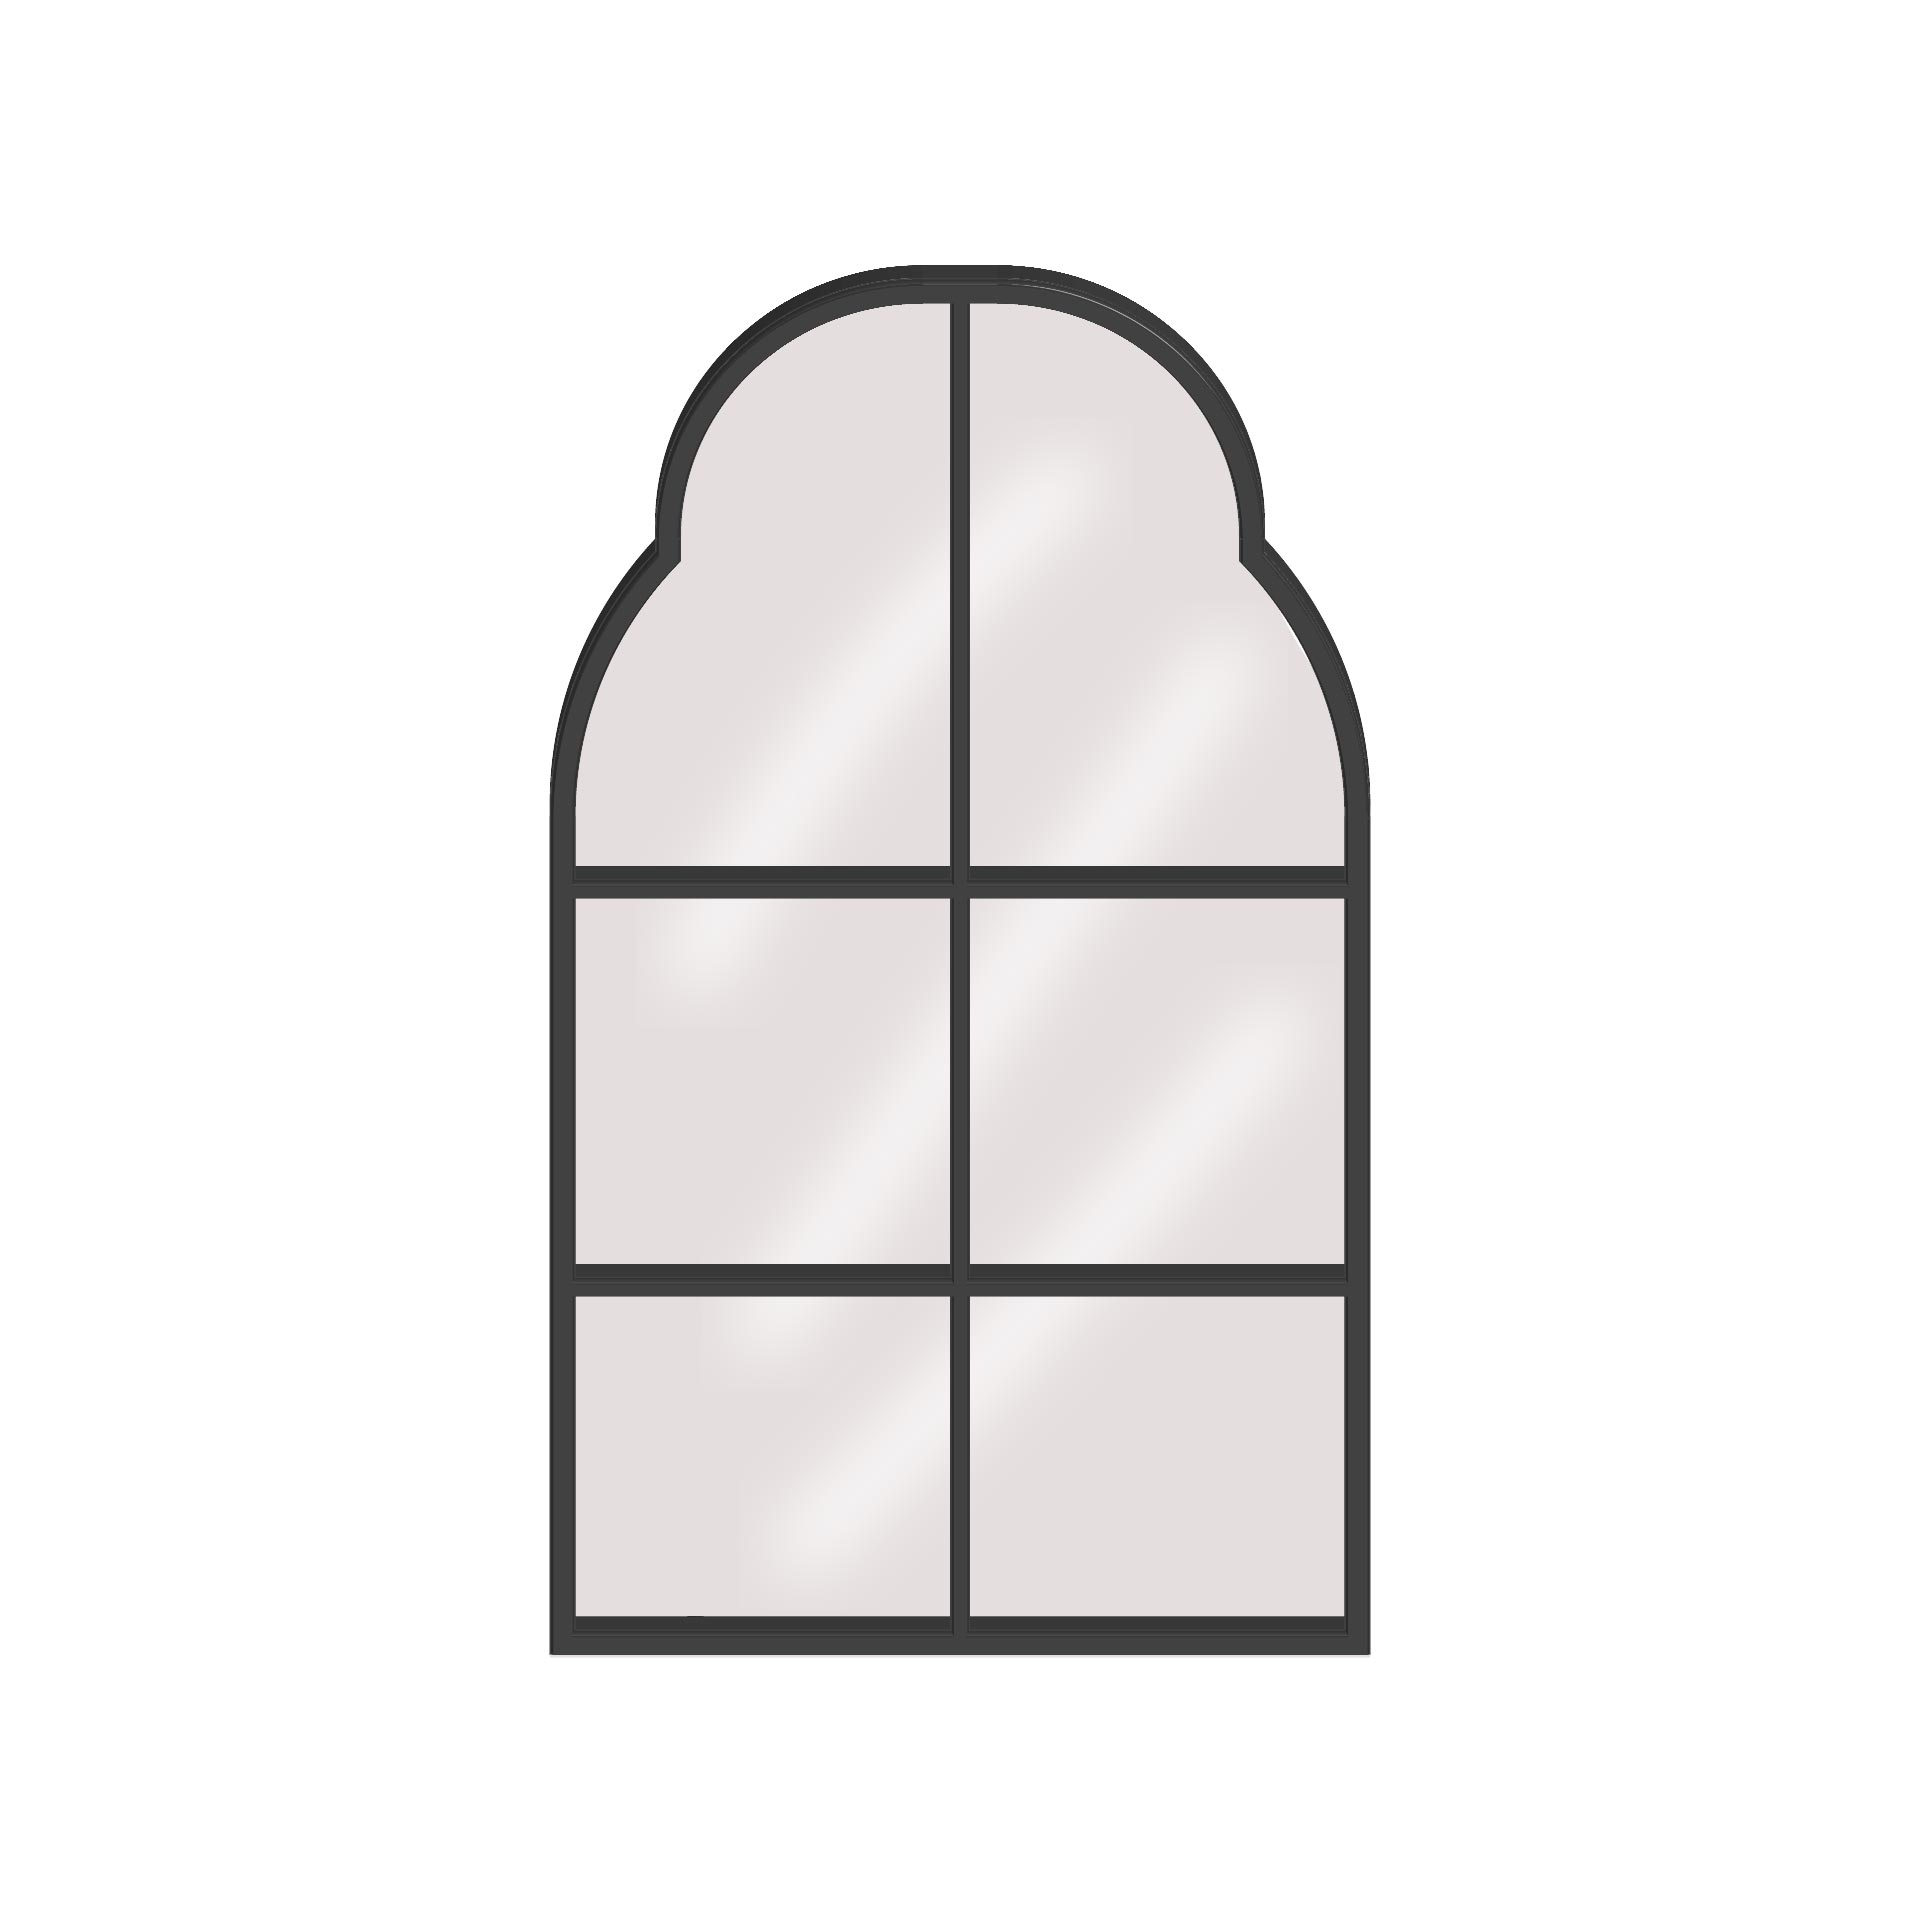 8 Best Images Of Window Template Printable